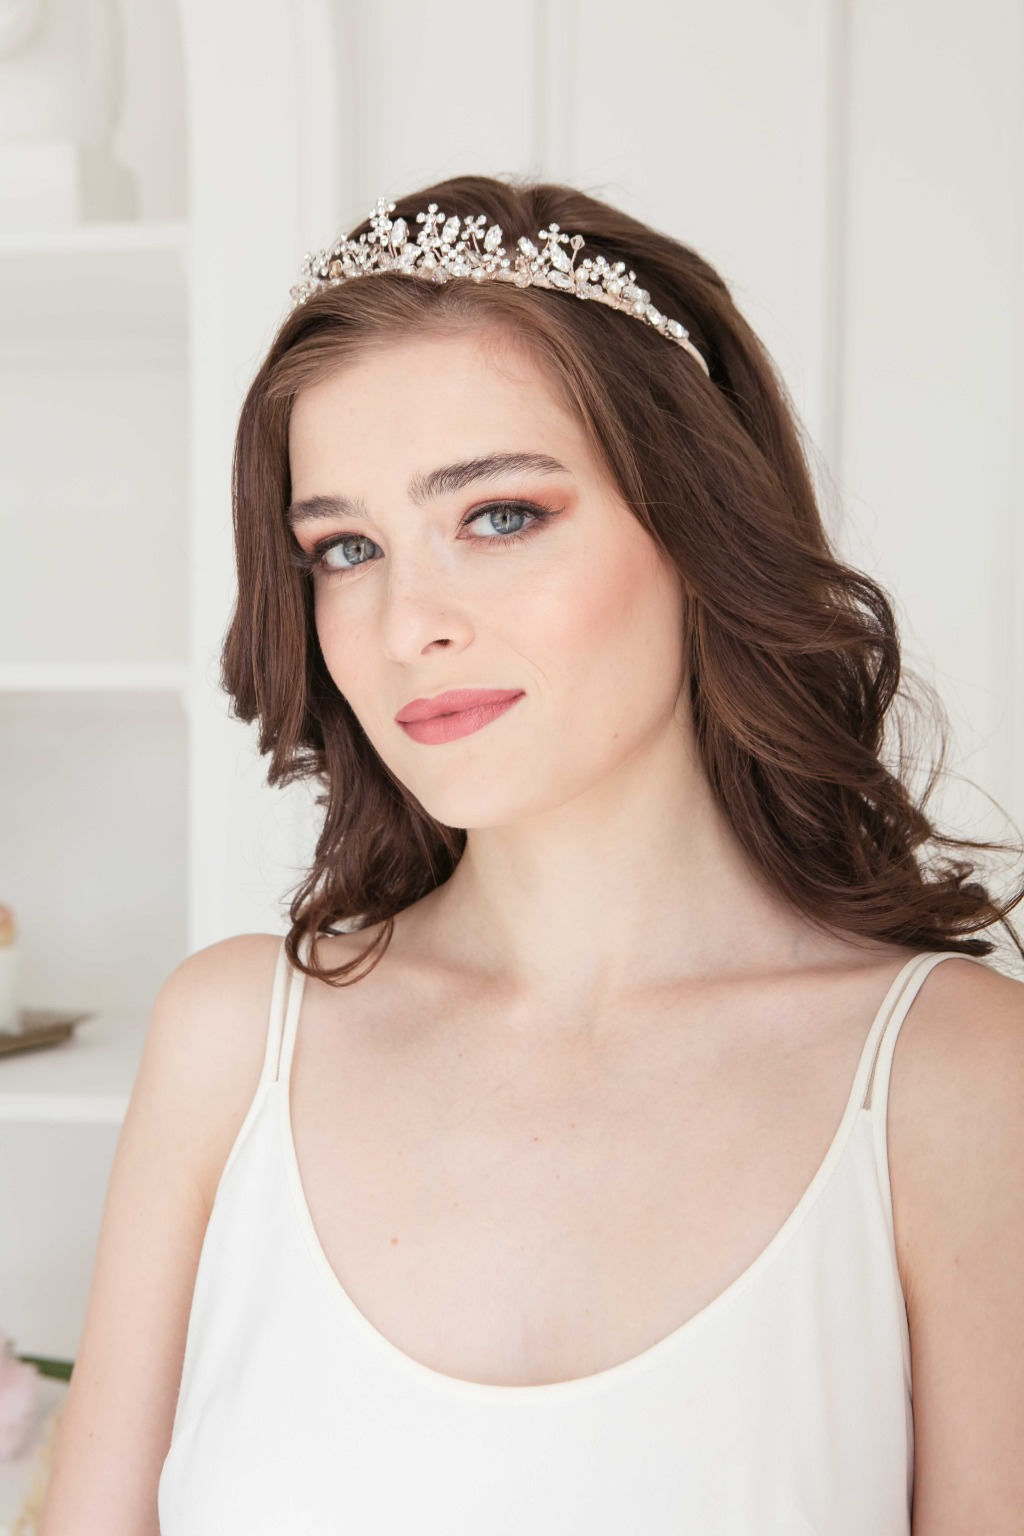 The delicate leaf bridal tiara is from Laura Jayne's 2020 collection.